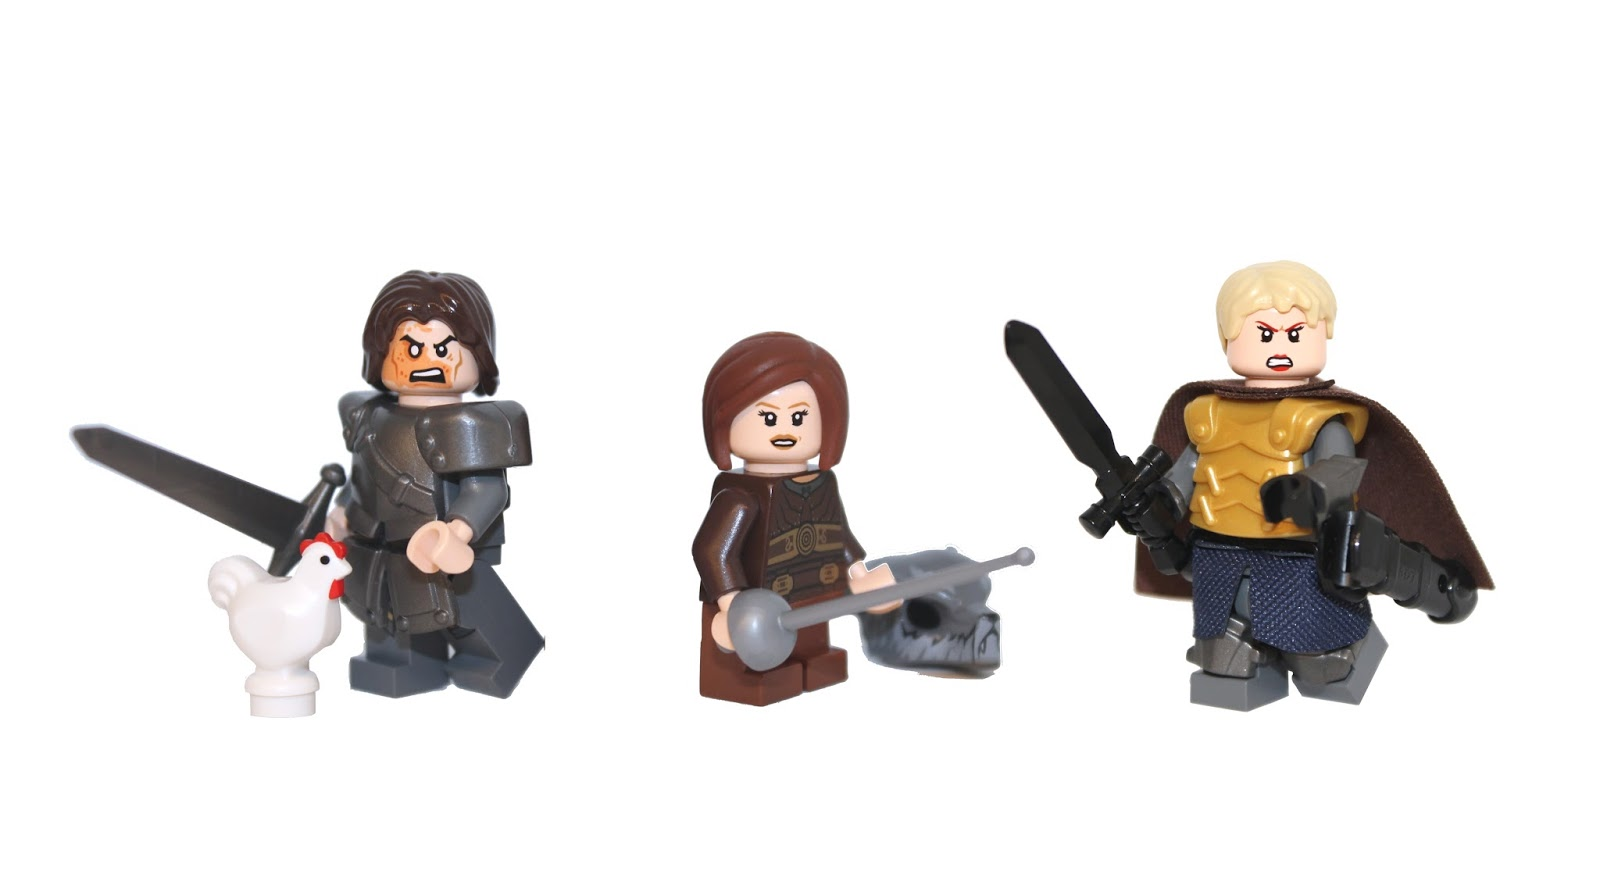 lego game of thrones, game of thrones lego, custom lego, custom lego mini figures, lego the hound, lego brine, lego arya stark, demonhunter bricks,